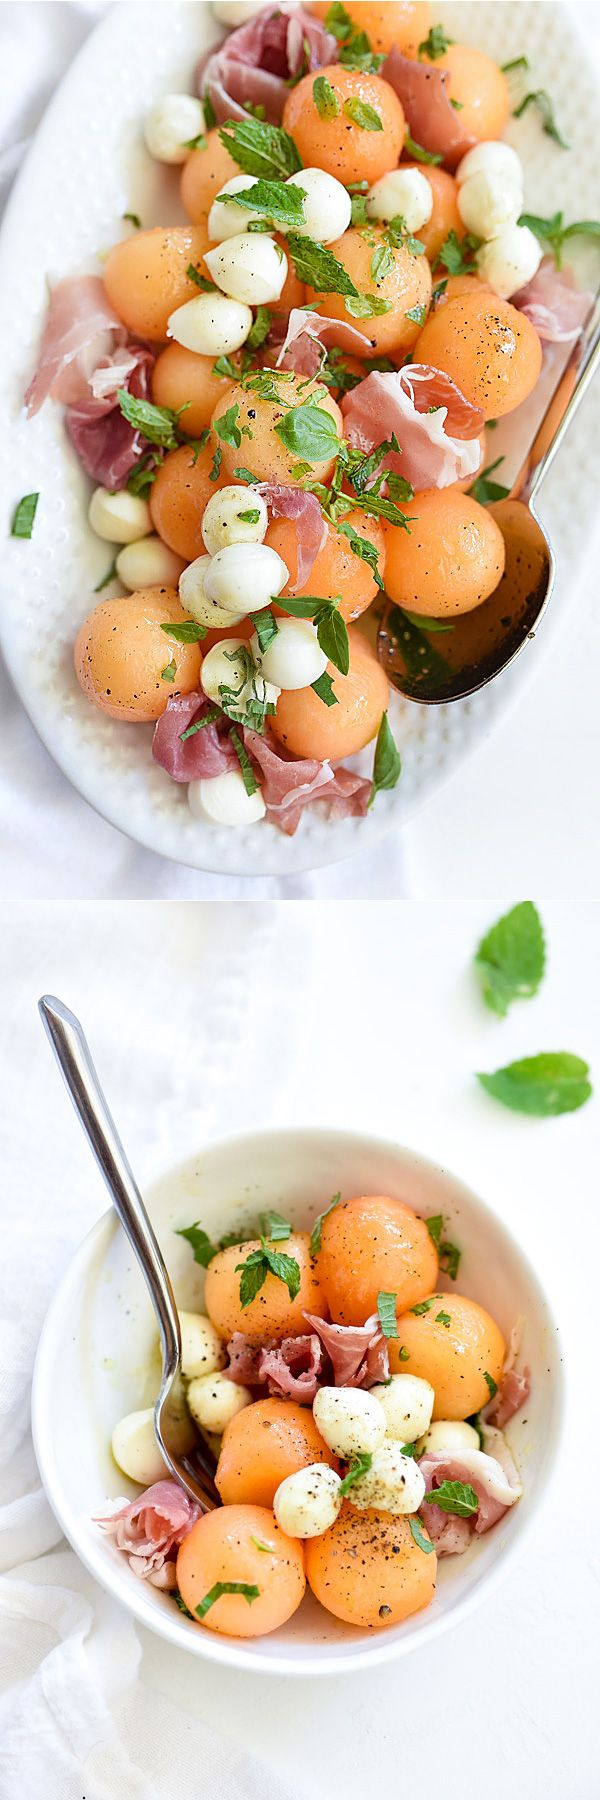 This recipe would be perfect for wedding appetizers! Especially in mini appetizer servings. Sweet melon subs in for tomatoes in my favorite spin on #capresesalad | foodiecrush.com